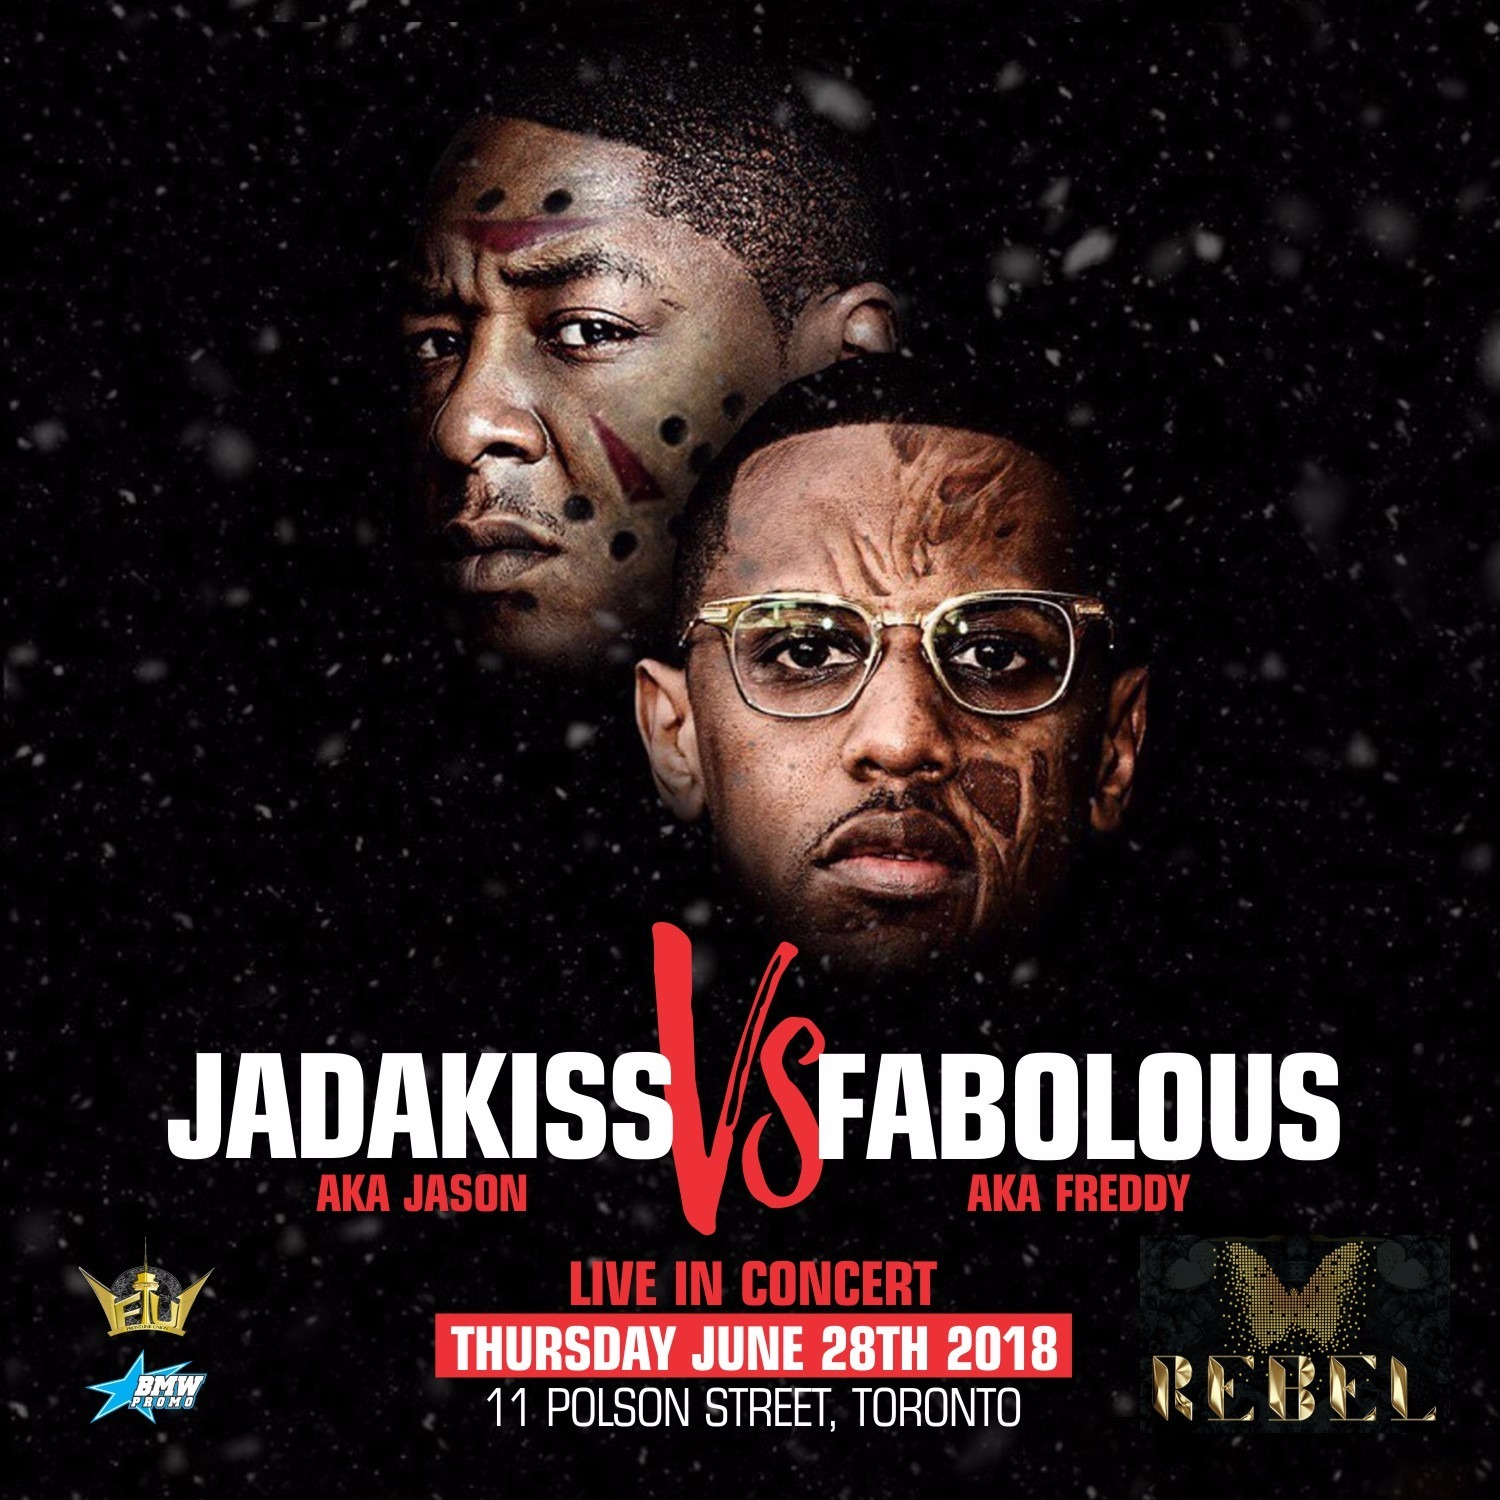 AKA JASON - JADAKISS V.S AKA FREDDY - FABOLOUS Live iN Concert @ Rebel